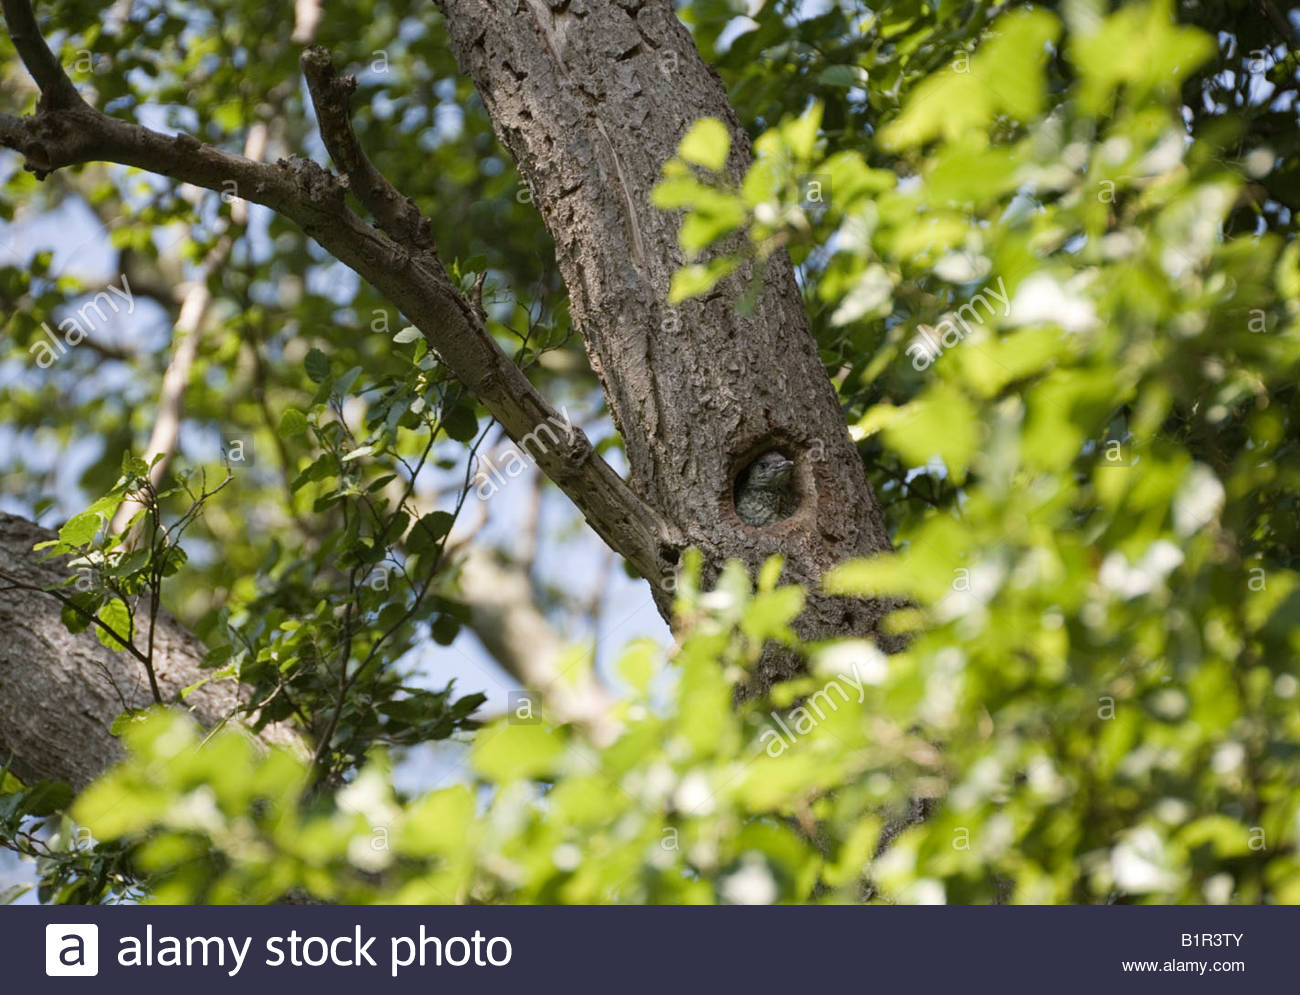 Green Woodpecker chick looking out of nest hole Picus Viridis/Picidae - Stock Image